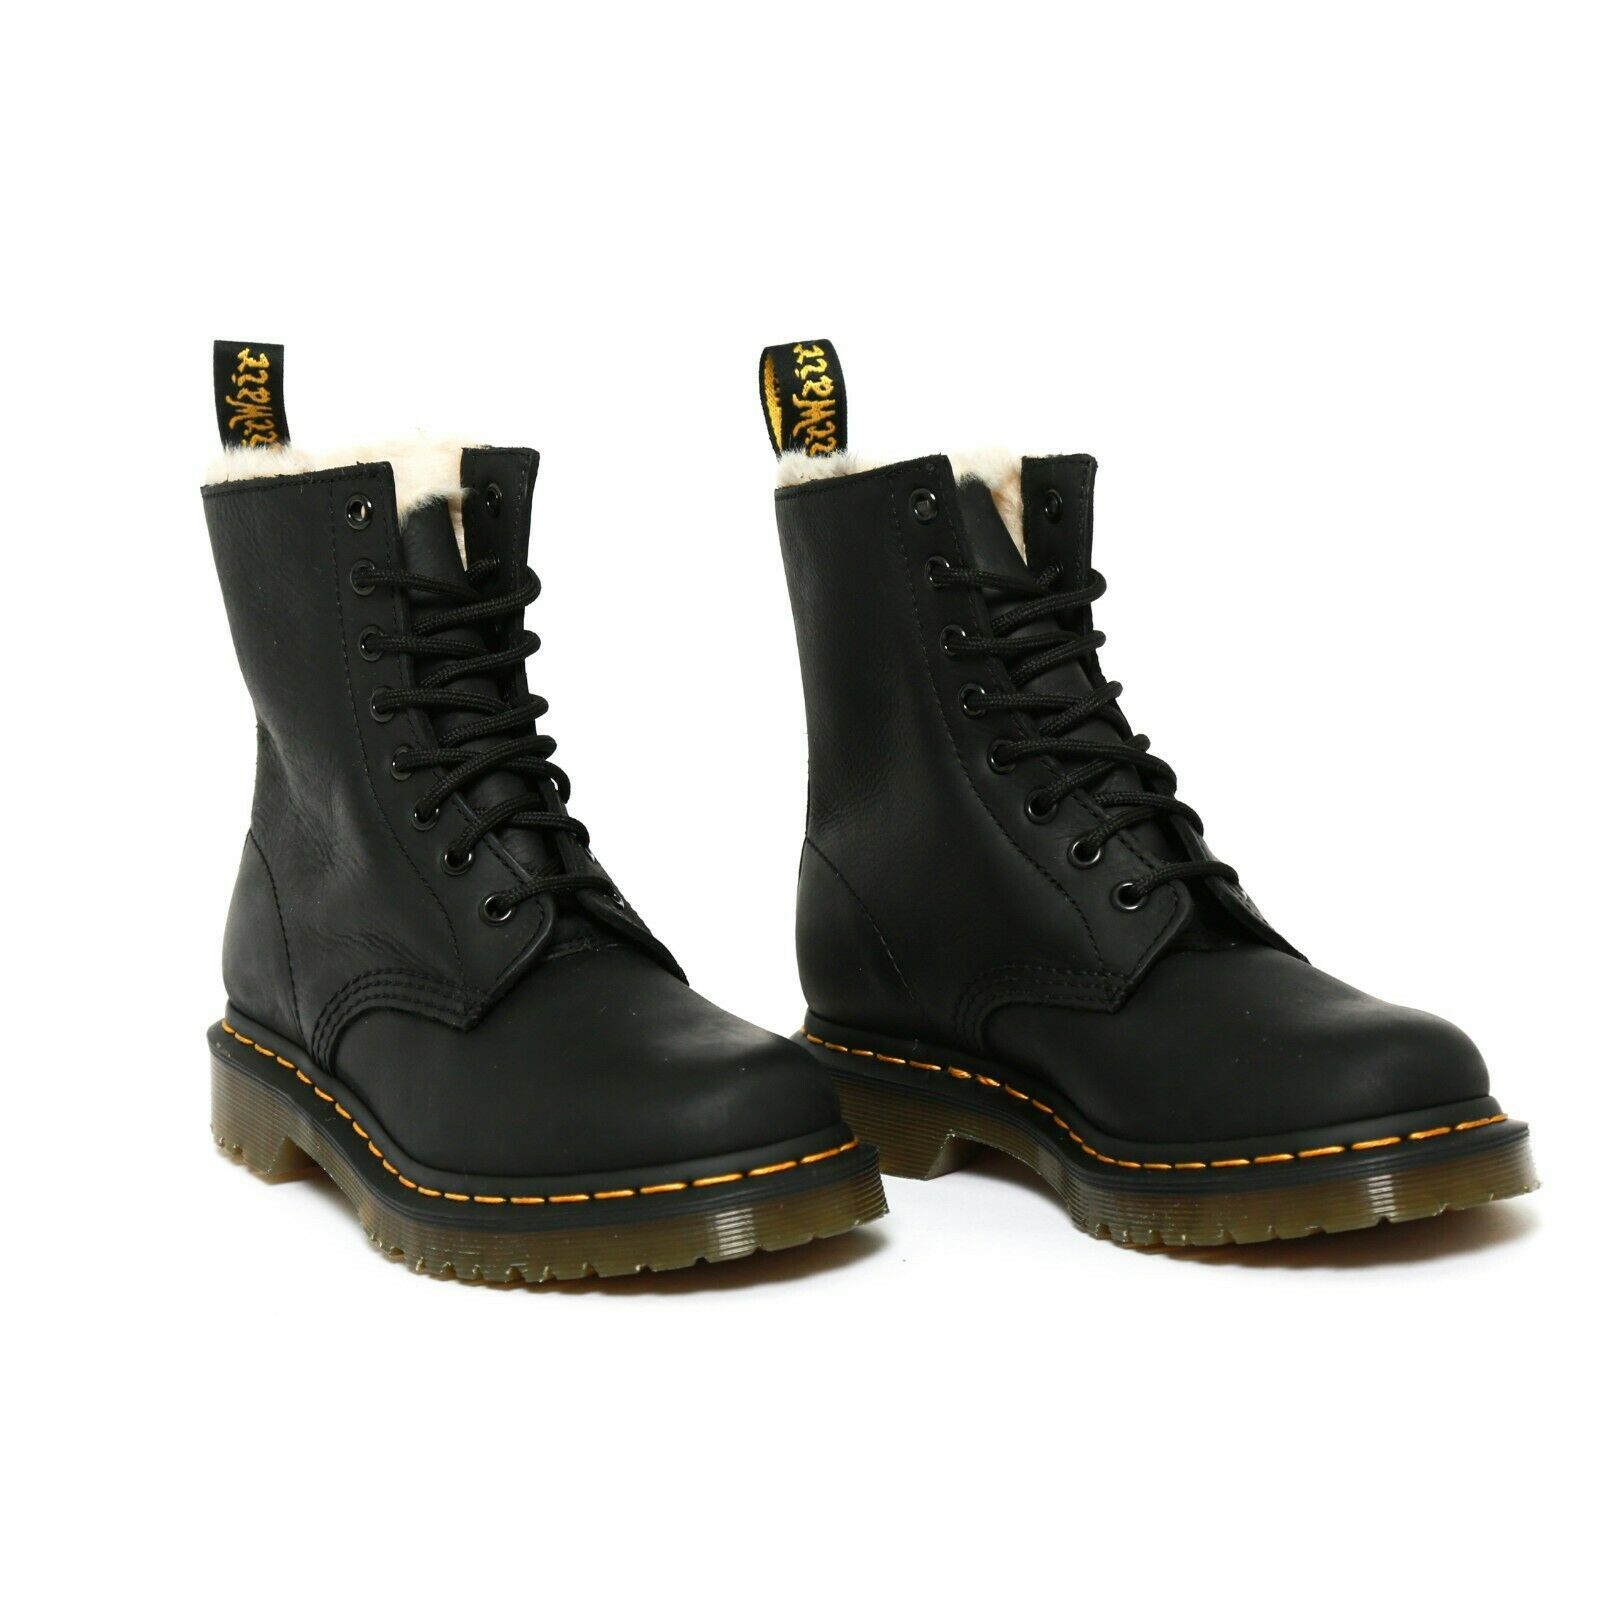 Dr Martens Air Boot (1940s): 0 listings